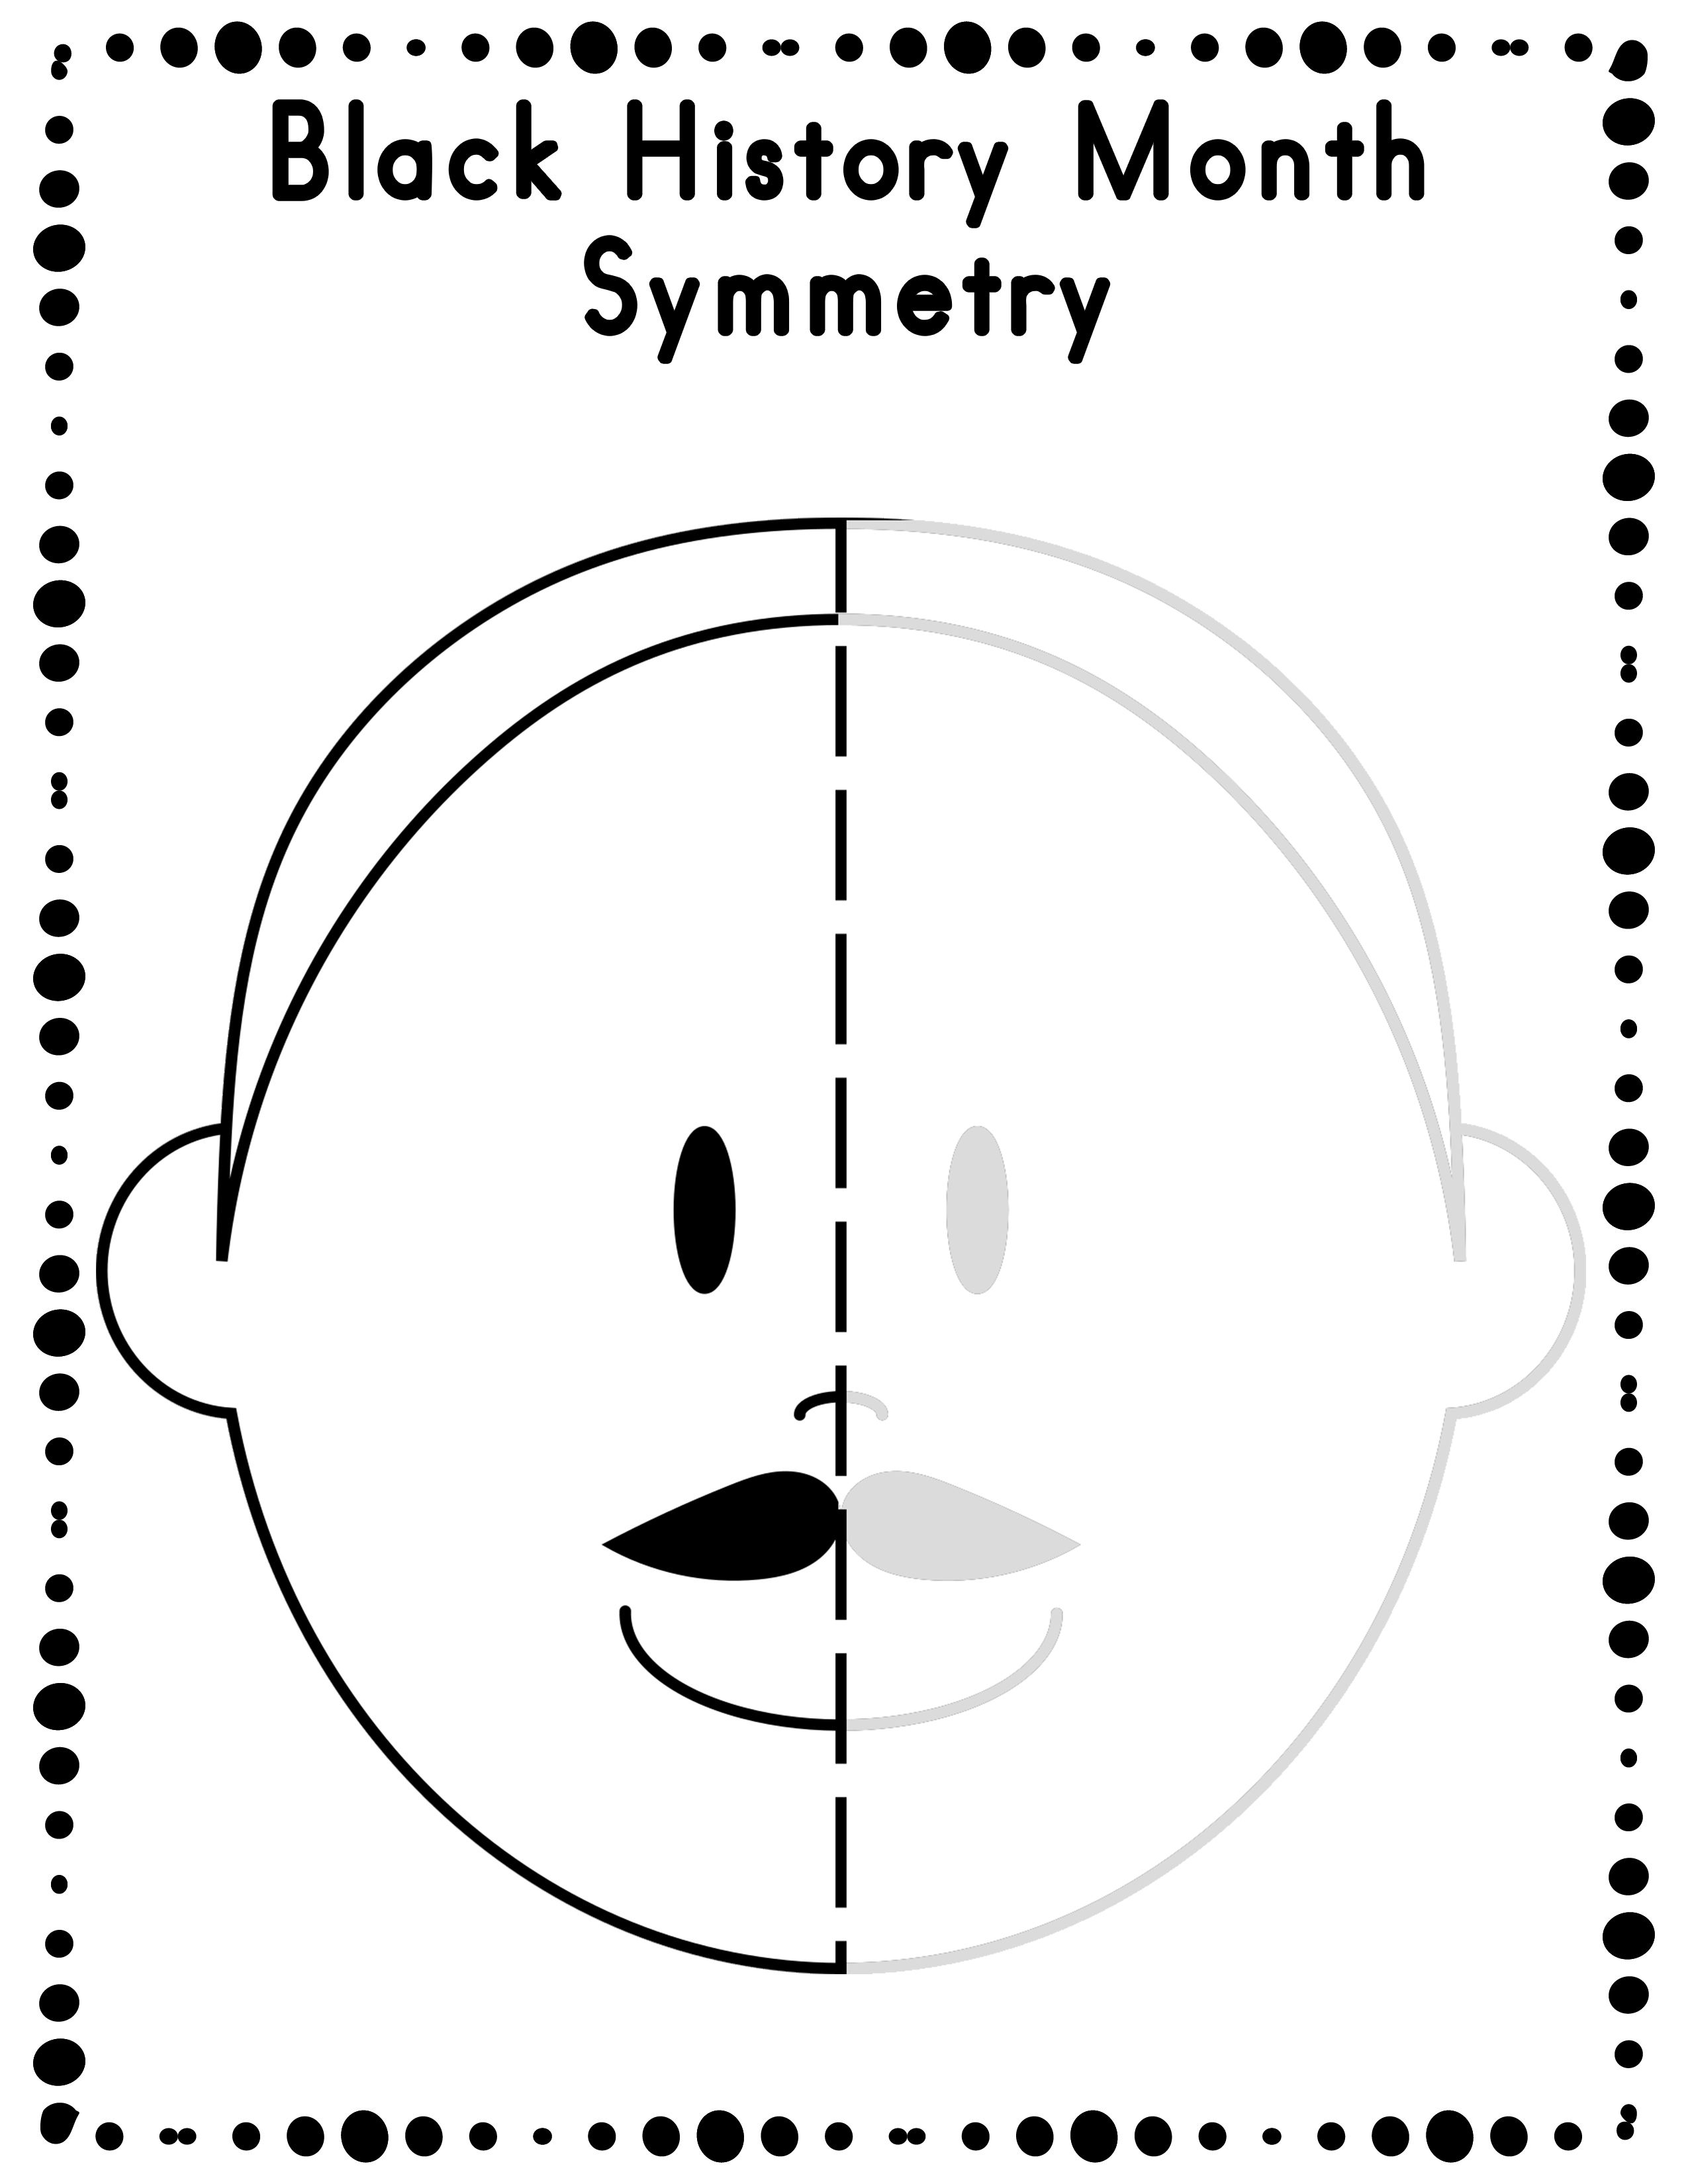 Free Black History Month Symmetry Activity Worksheets   Freebies For - Free Printable Black History Month Word Search